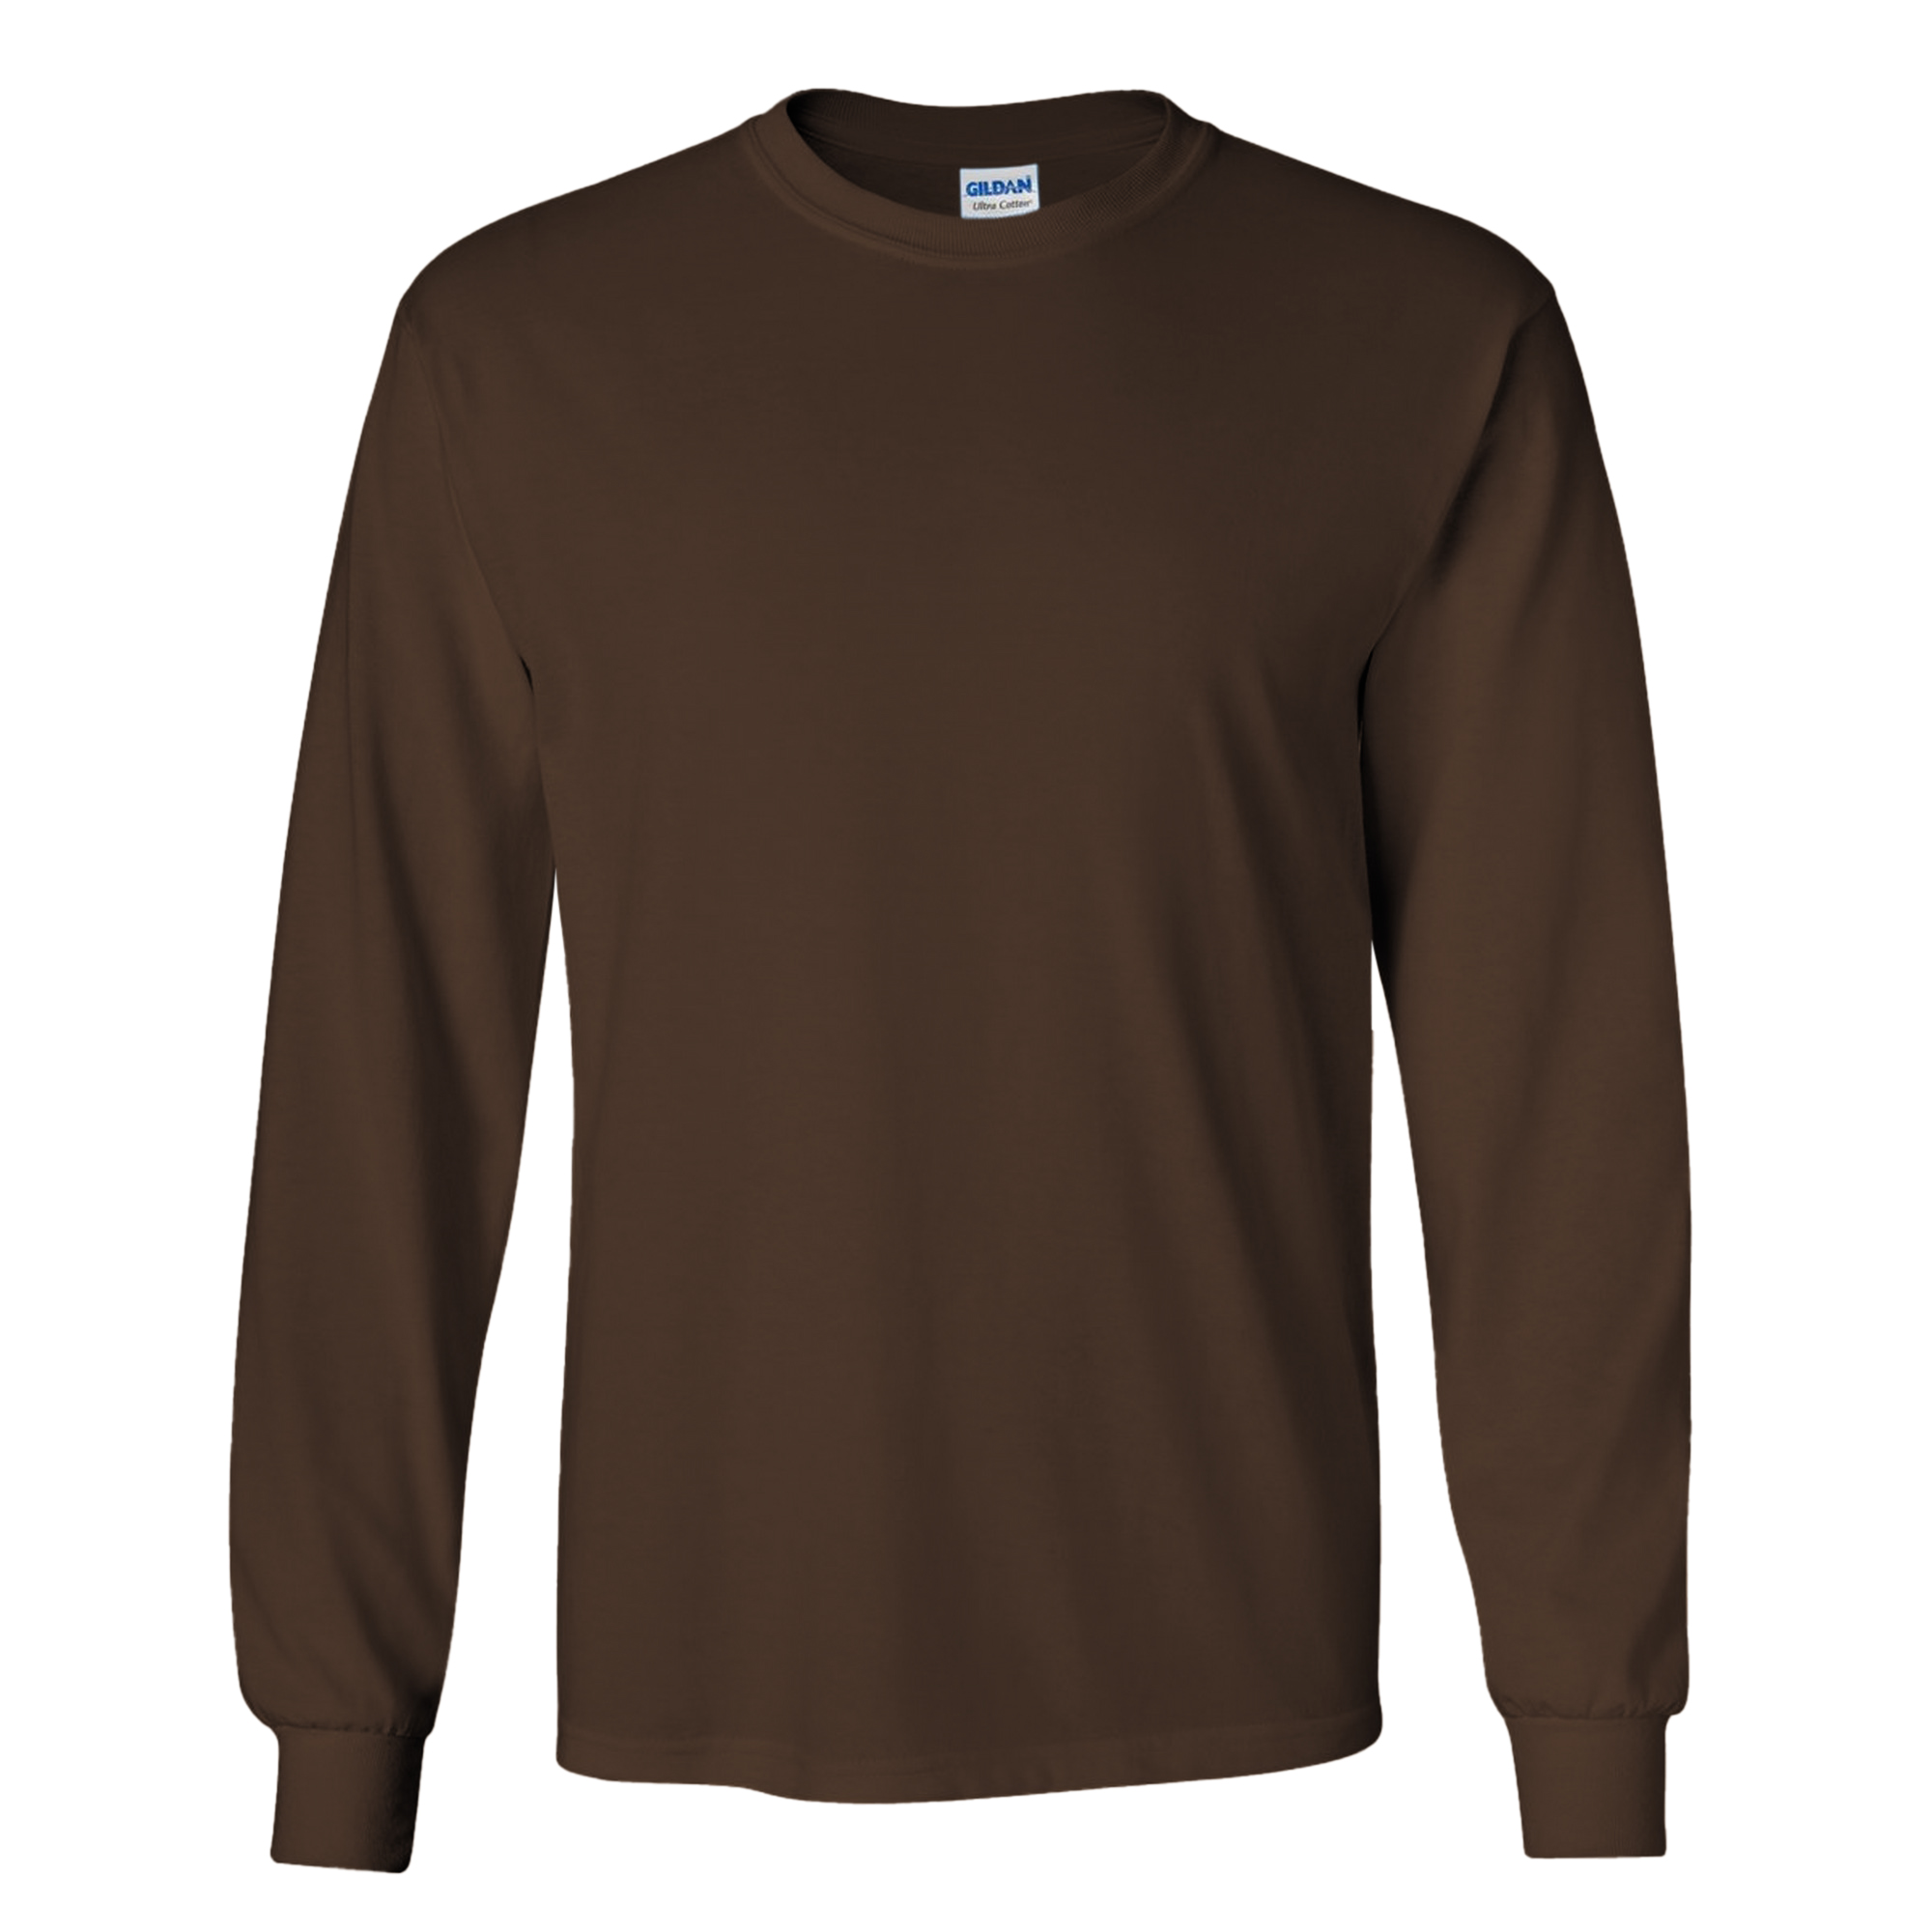 Long on style and big on comfort, our men's long sleeve T shirts bring back warm-weather fashion this season with a % combed, ring-spun cotton build that warms the body and the soul. Spandex-reinforced collar and cuffs for durability.